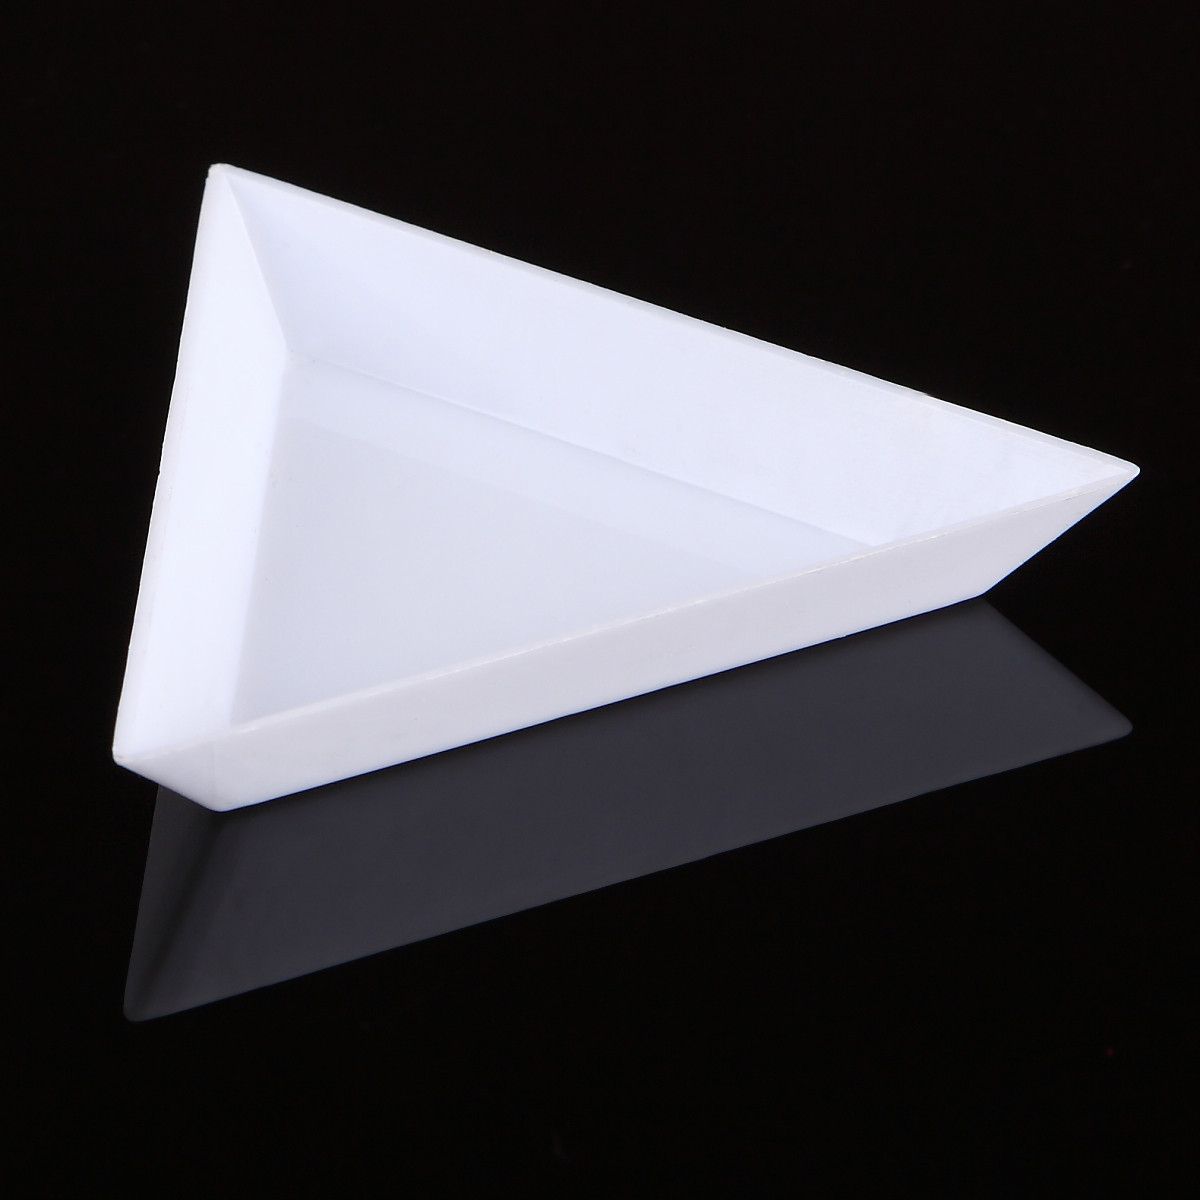 Triangle spill tray for holding glitter, rhinestones and other nail art supplies. Available at www.lanternandwren.com.